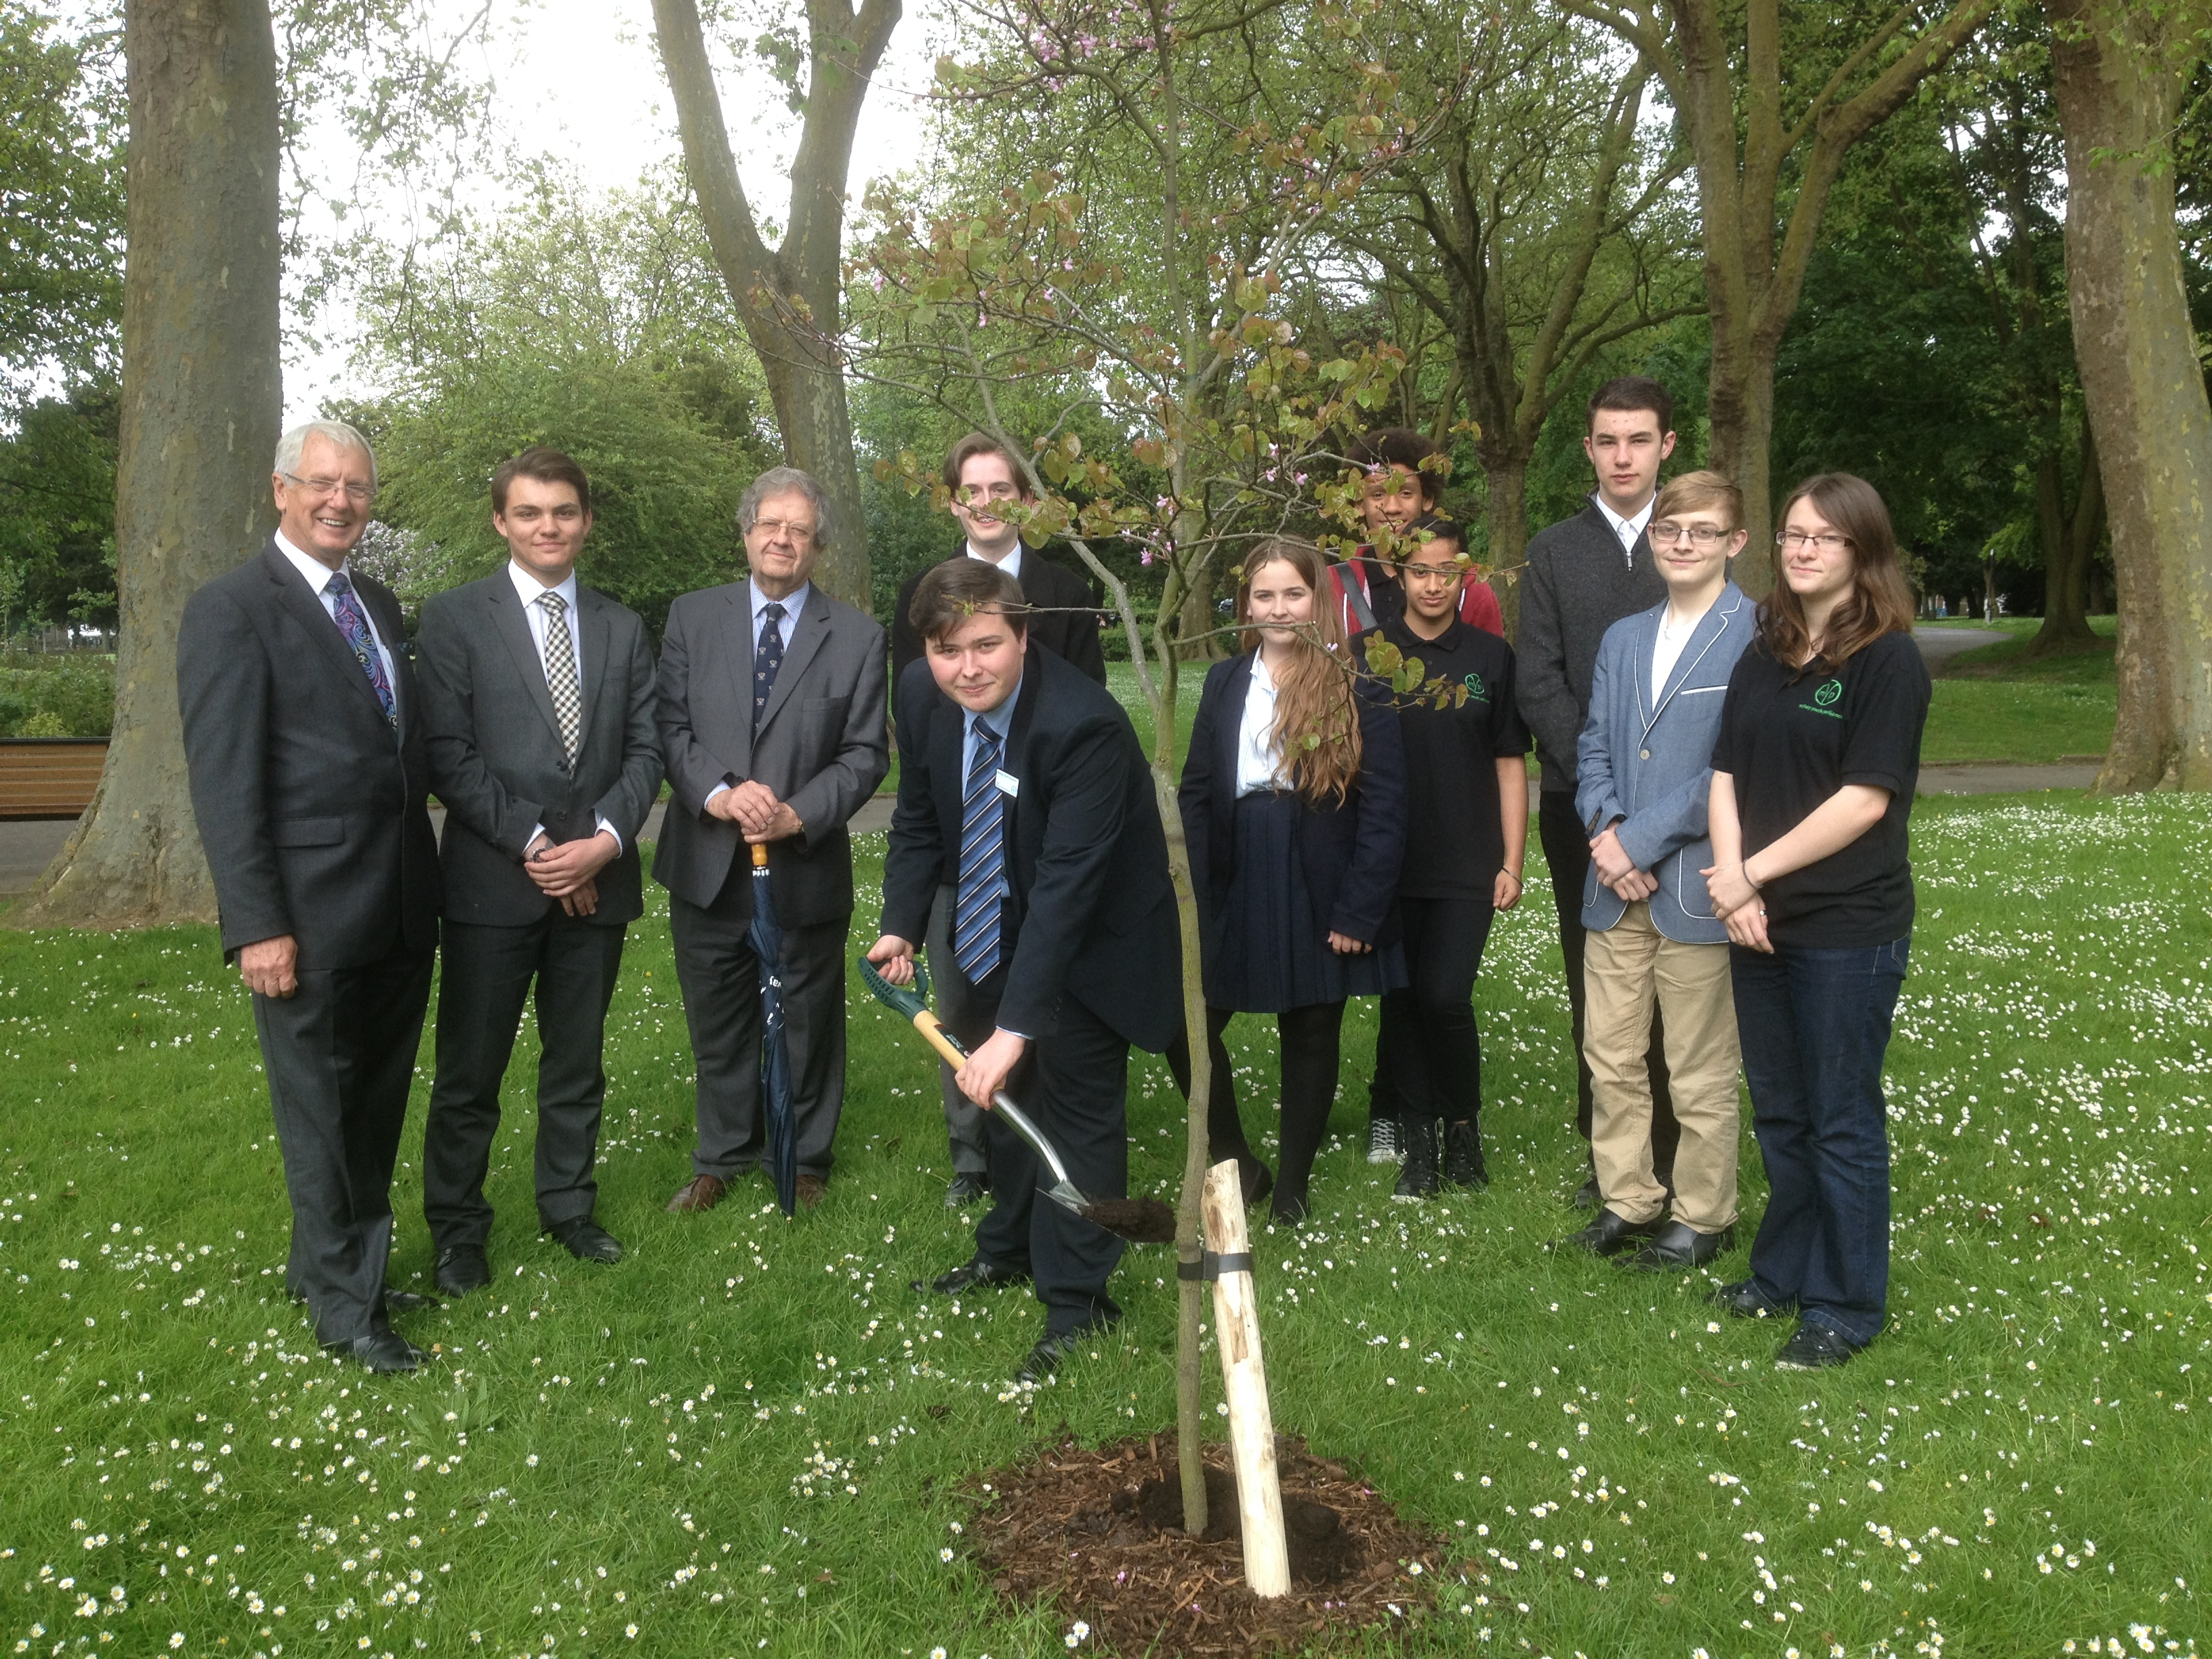 parkwood christian fellowship preschool medway youth parliament plant a tree in gillingham 174